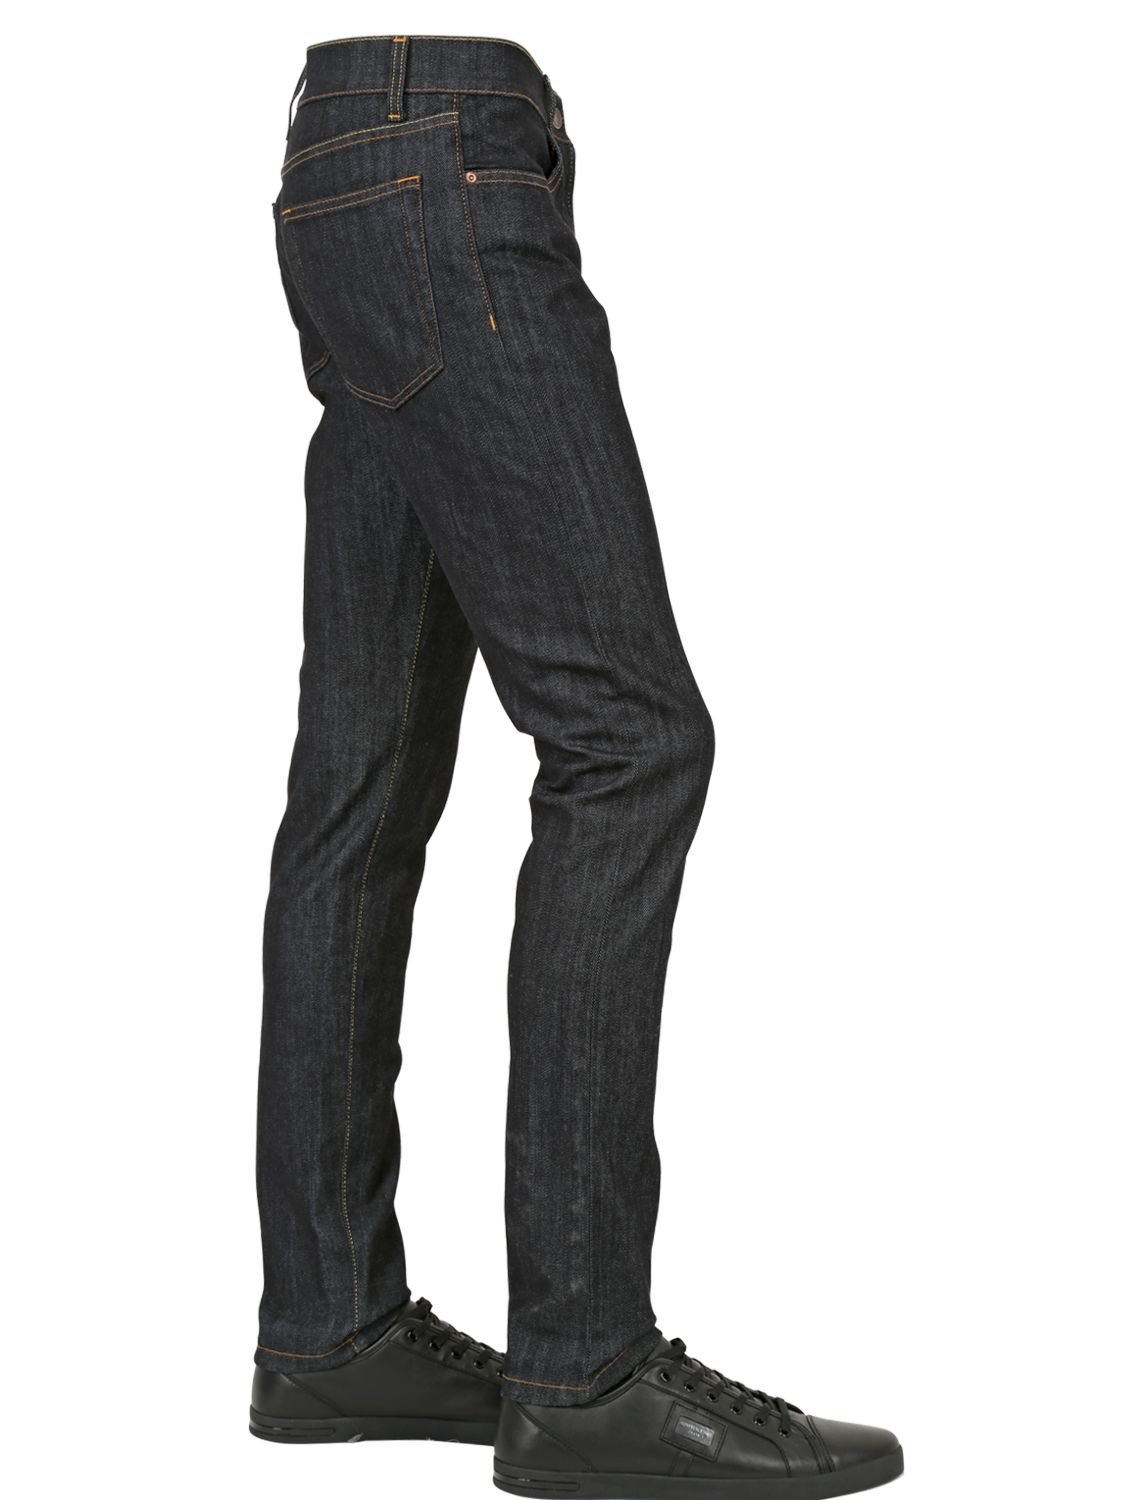 Dolce & Gabbana 17cm Stretch Denim Jeans in Black for Men